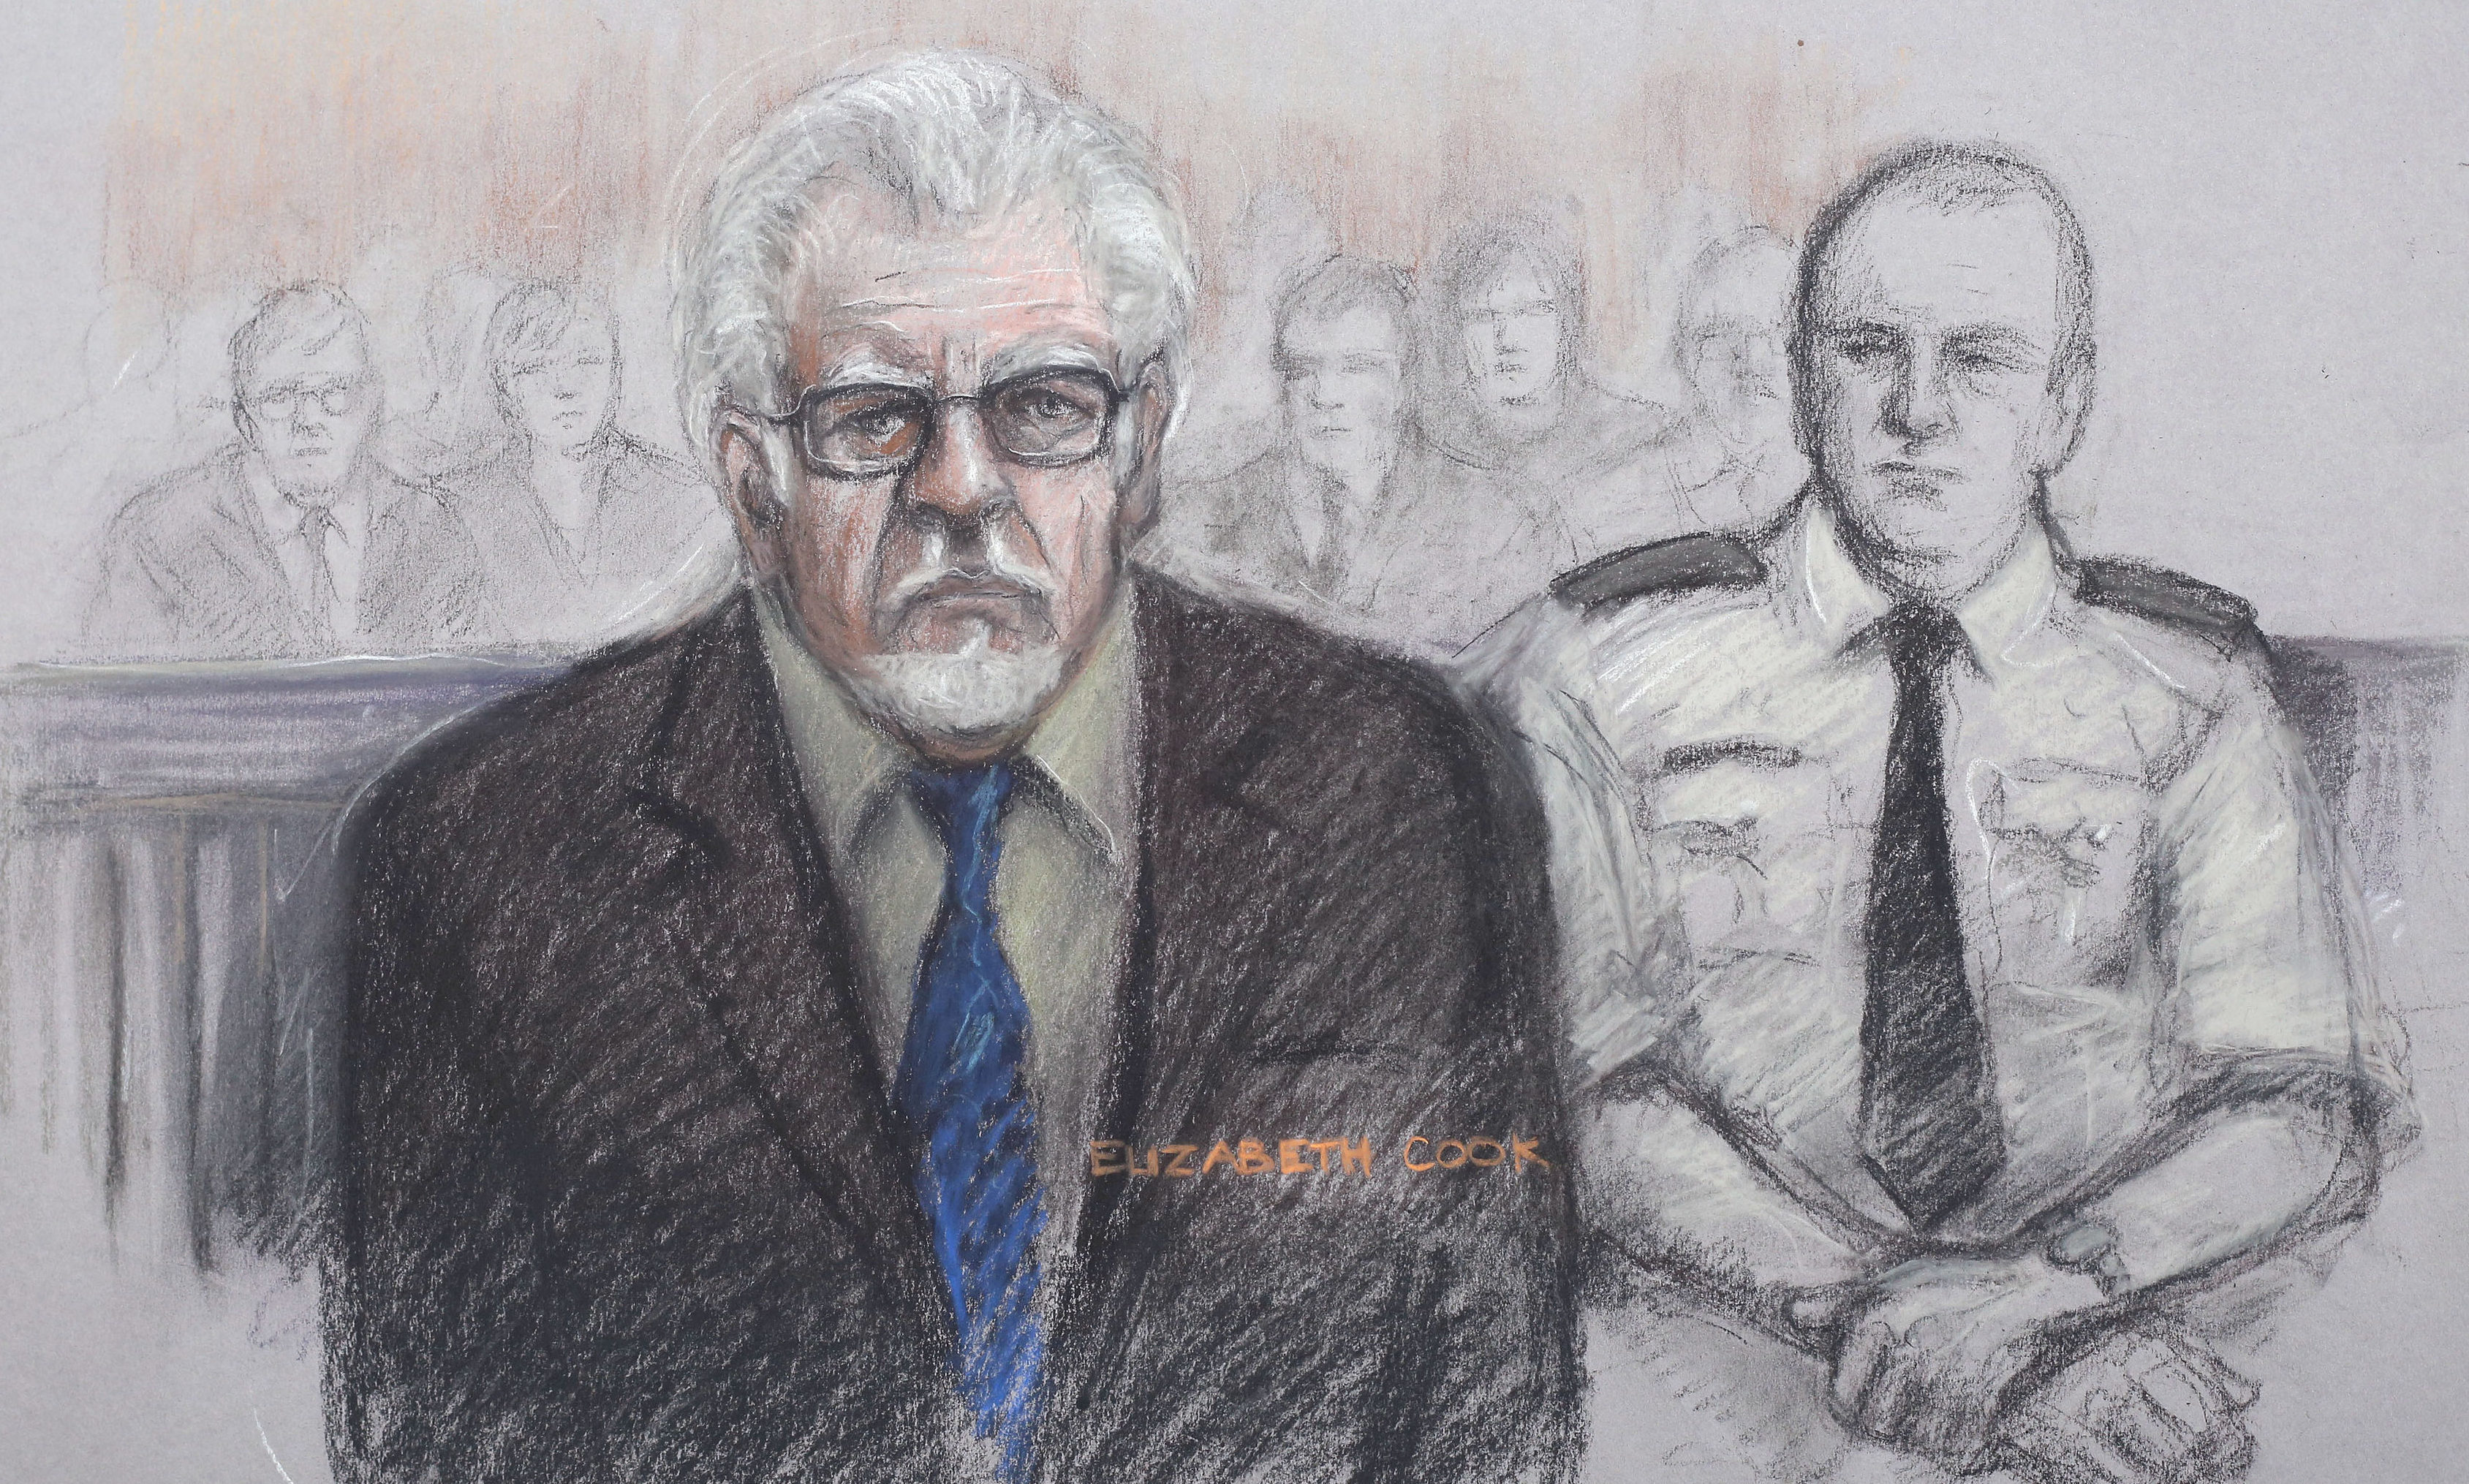 Court artist sketch by Elizabeth Cook of Rolf Harris at Southwark Crown Court in London.